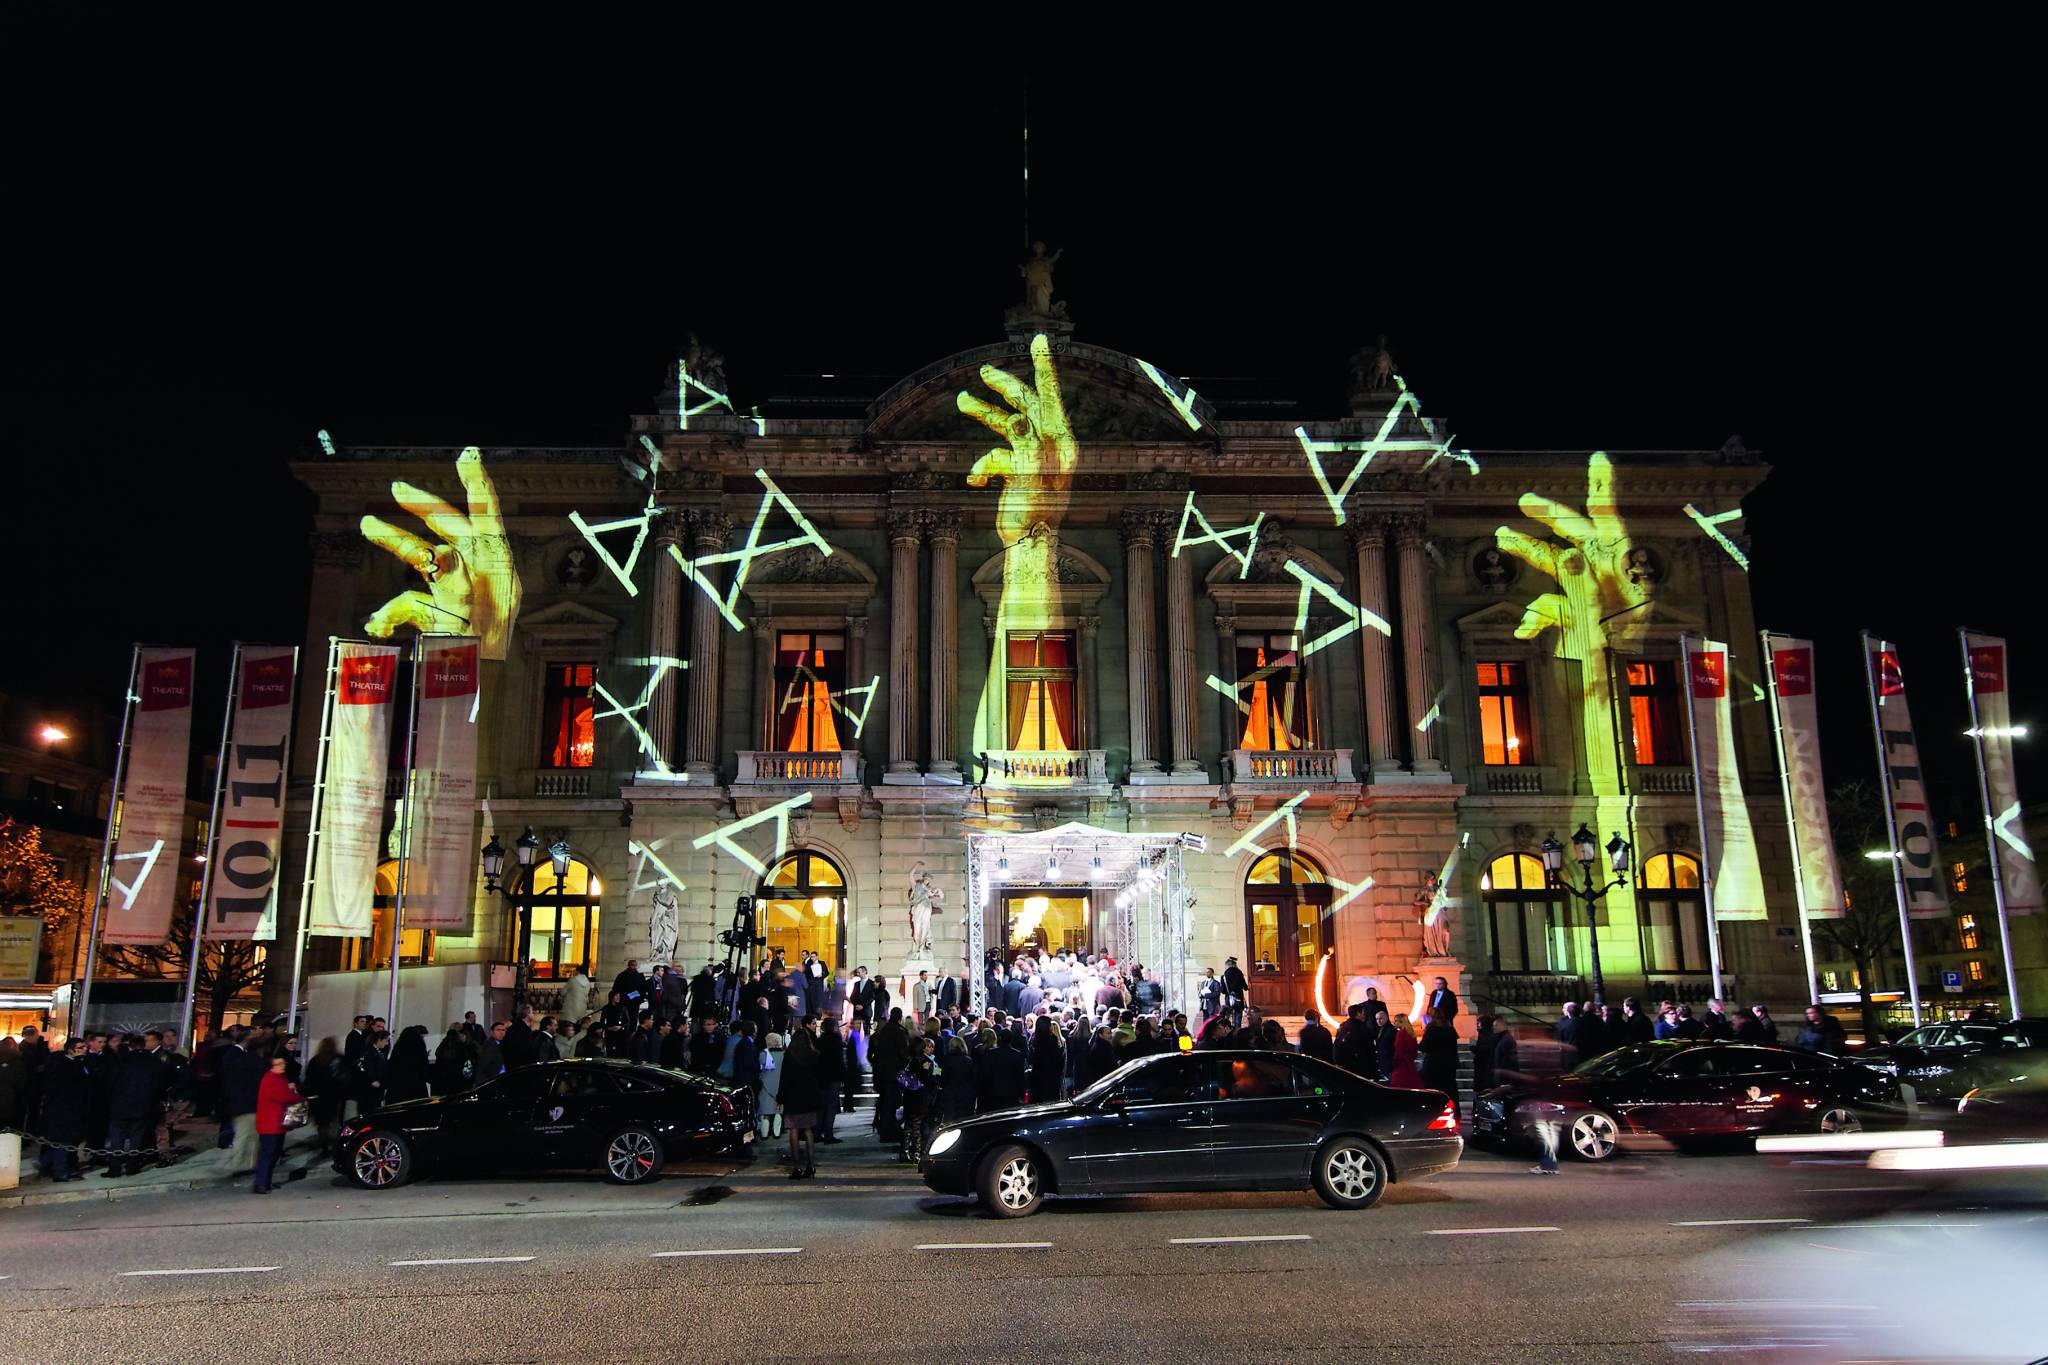 The Grand Théâtre de Genève lit up by Gerry Hofstetter